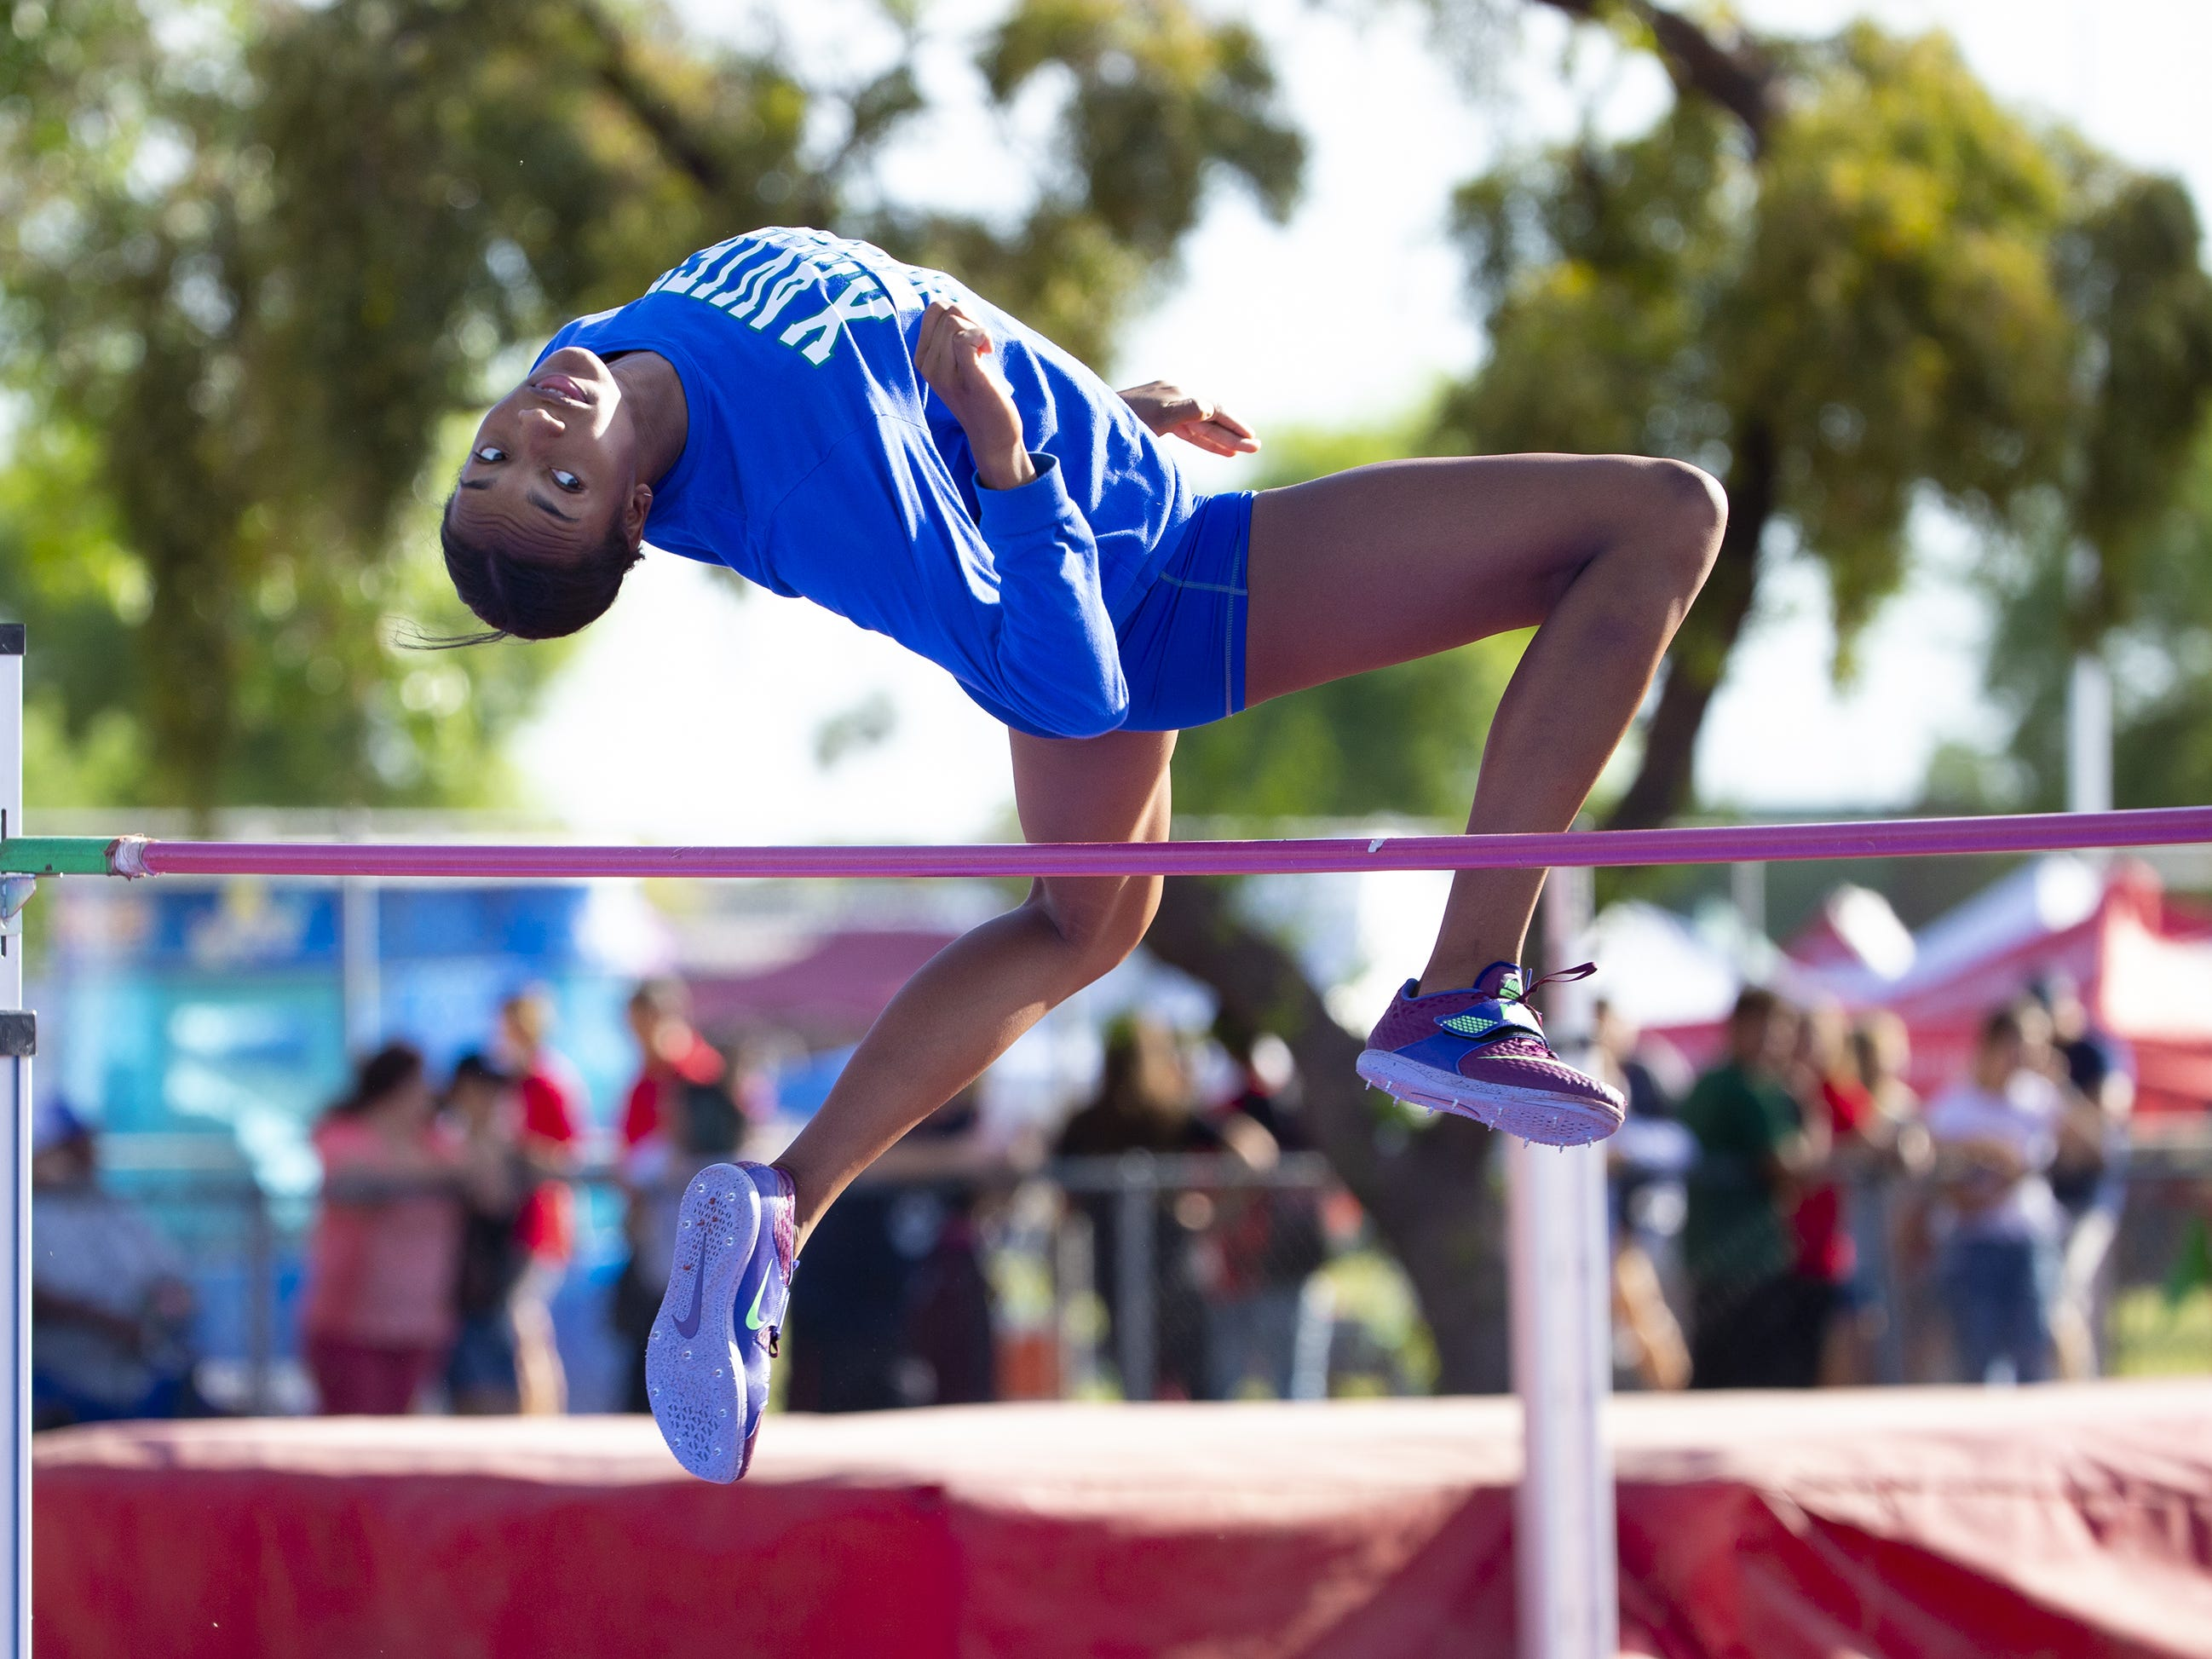 Xavier's Jada Sims warms up in the high jump during the state track and field meet at Mesa Community college on May 1, 2019.